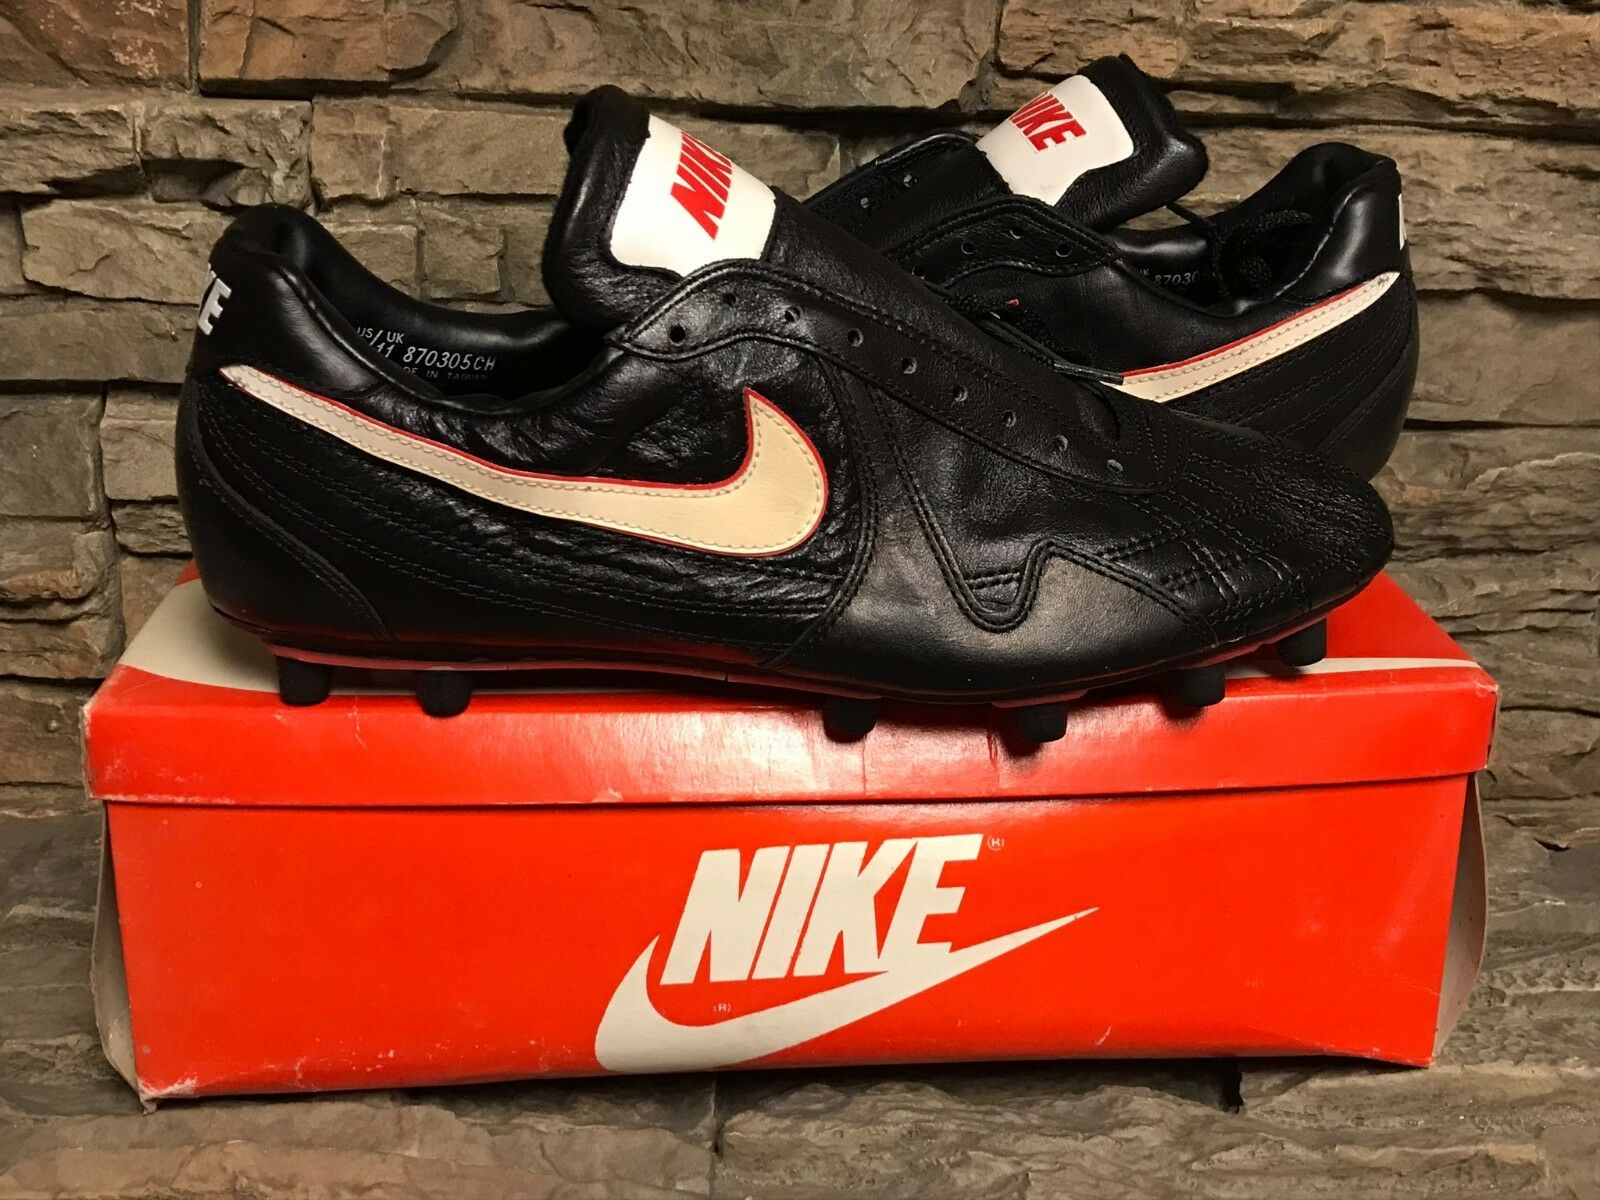 VTG OG Nike Albion Soccer Cleats Cleats Cleats shoes New With Box NOS Mens Sz 12 88c8f5